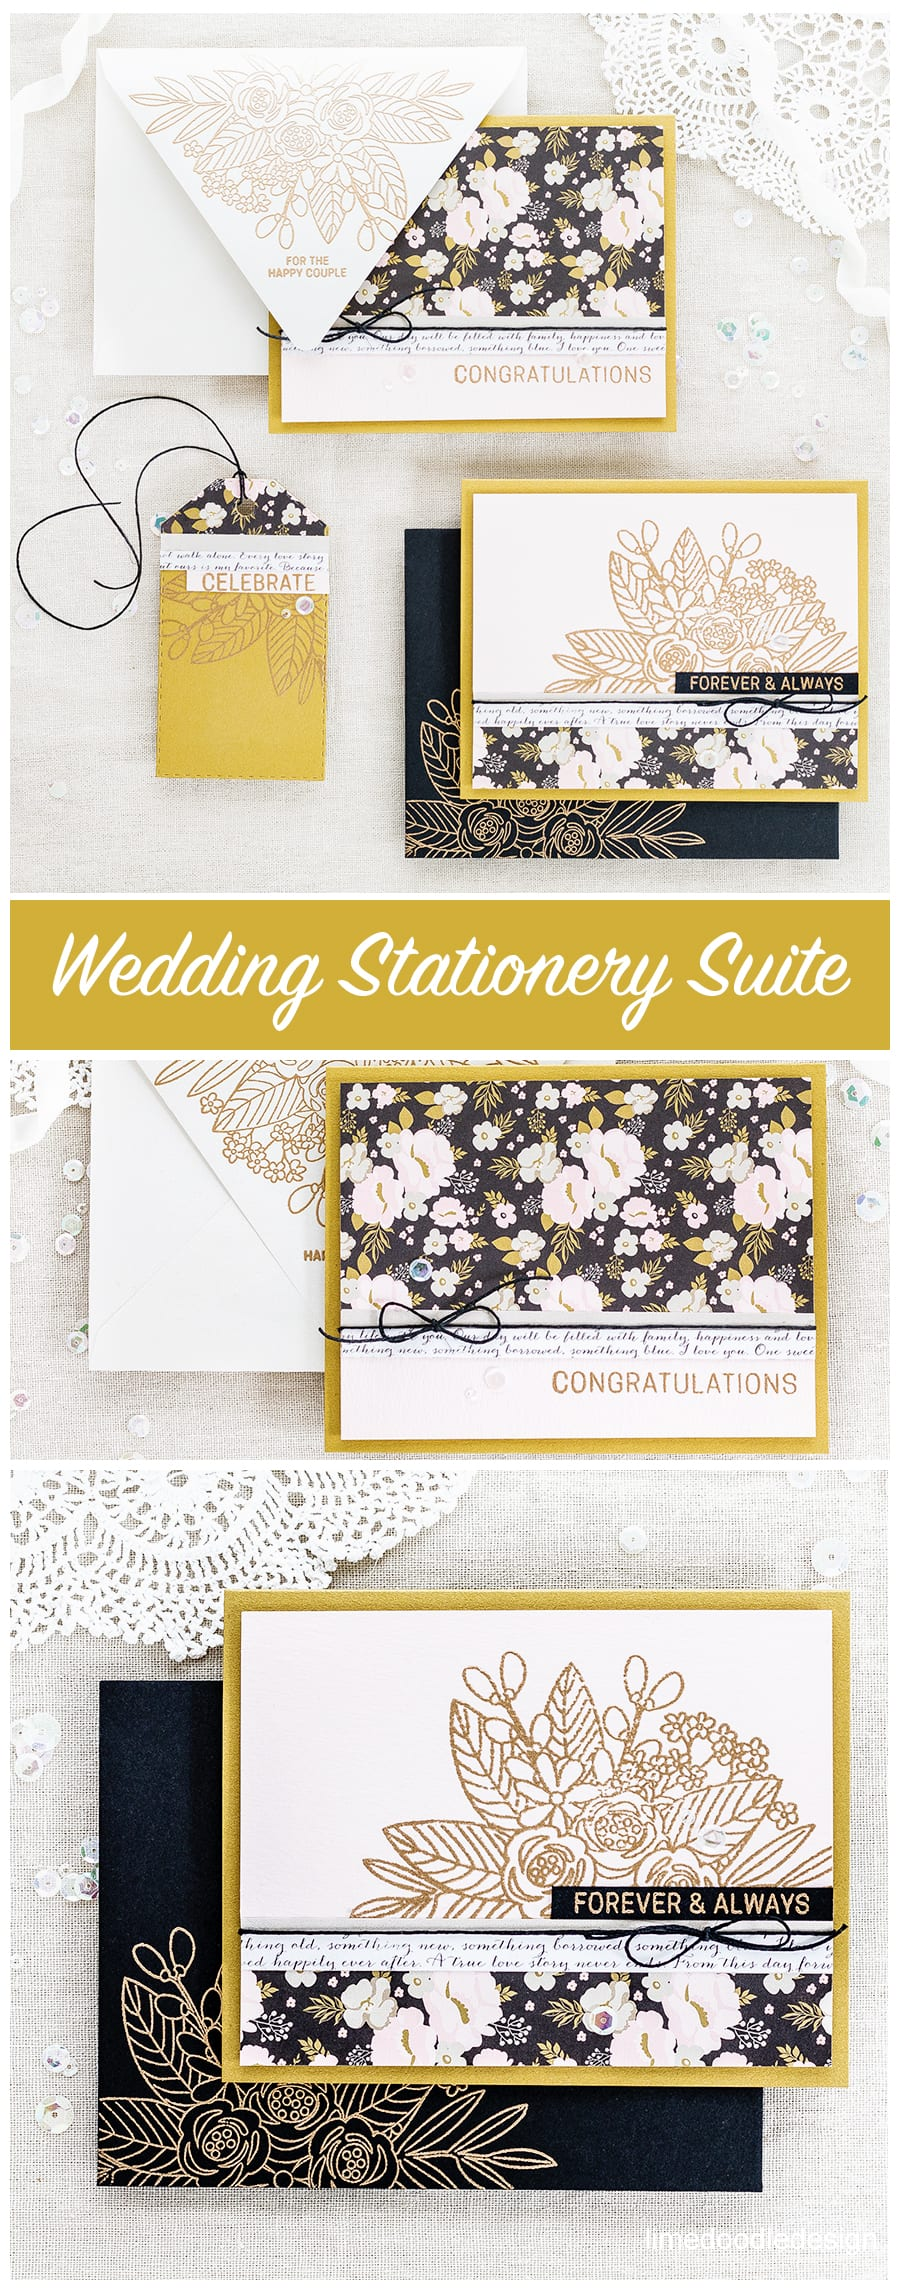 Wedding stationery suite by Debby Hughes using the Simons Says Stamp June Card Kit. Find out more about these cards, envelopes and tag by clicking on the following link: http://limedoodledesign.com/2017/05/wedding-suite-simon-says-stamp-june-card-kit/